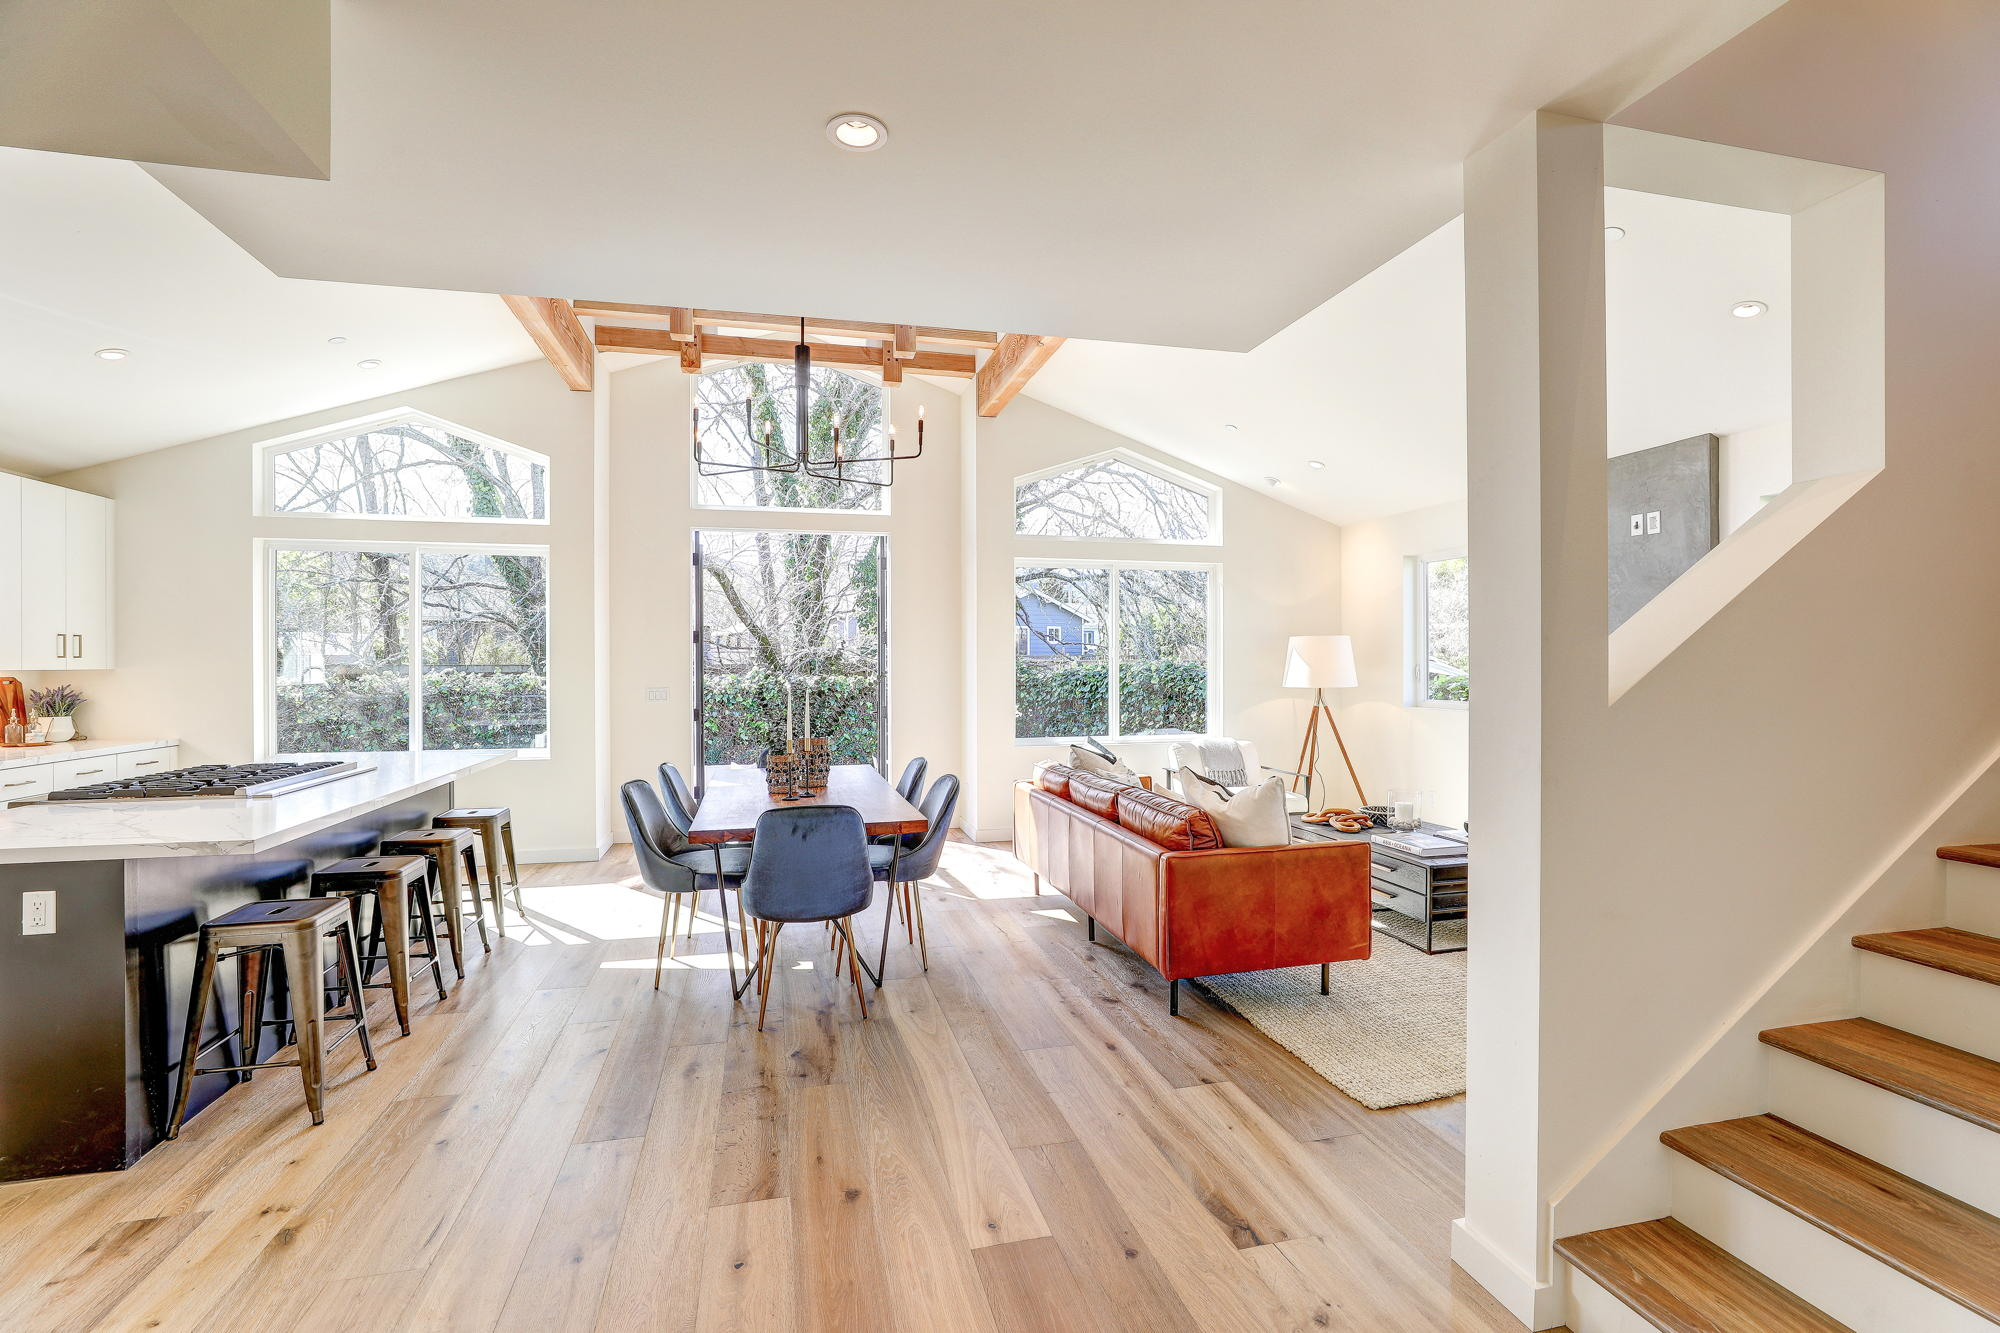 38 Ryan Avenue, Mill Valley - Sycamore Park Homes for sale - 06- Listed by Team Own Marin with Compass Real Estate.jpg